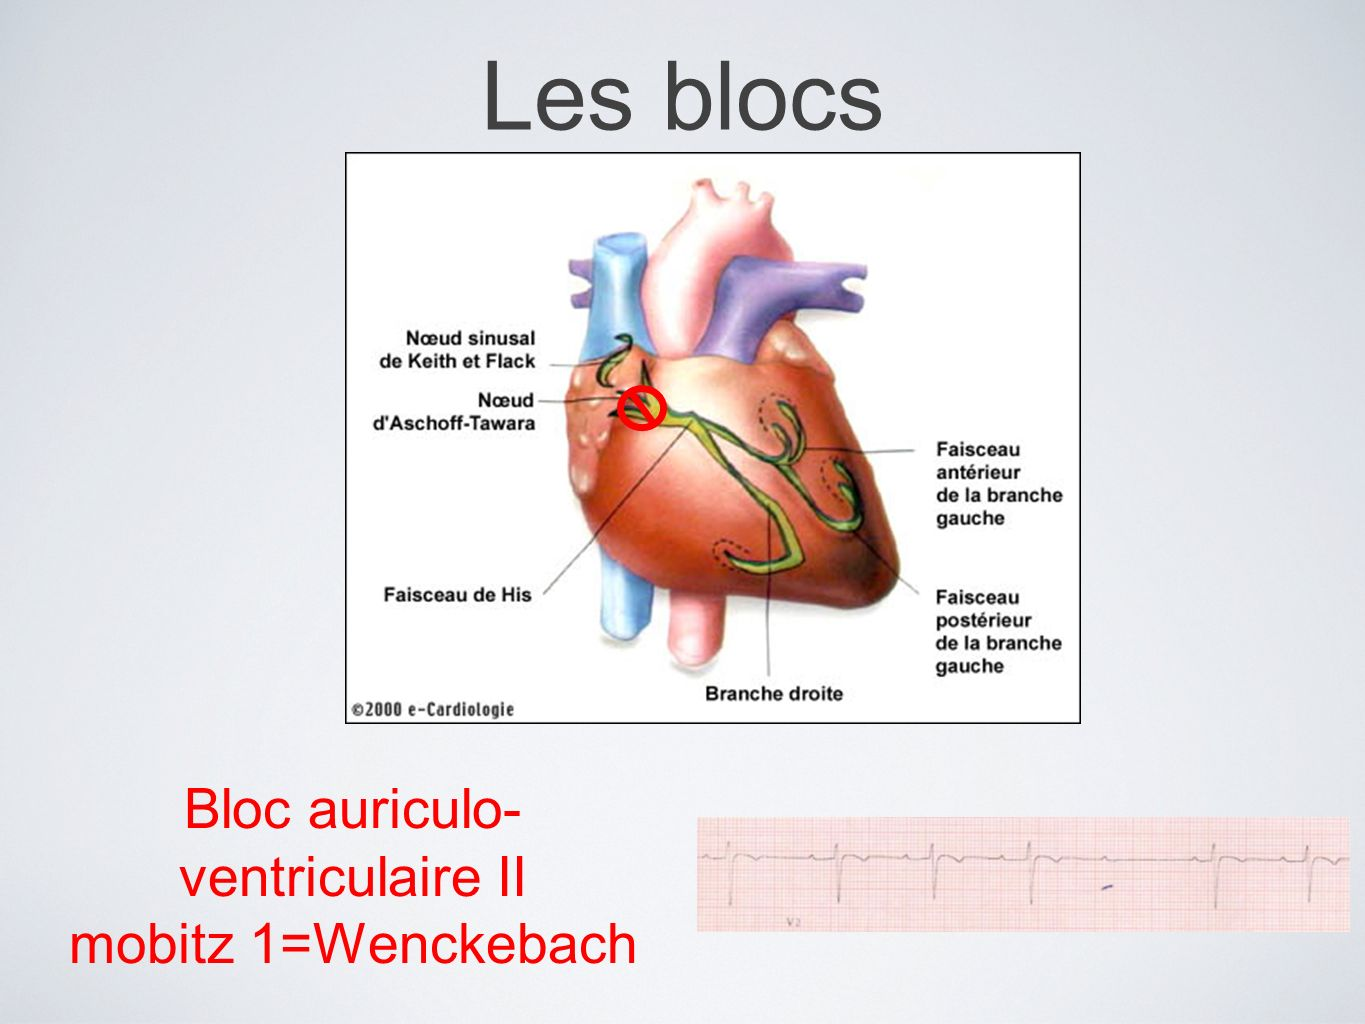 Bloc auriculo-ventriculaire II